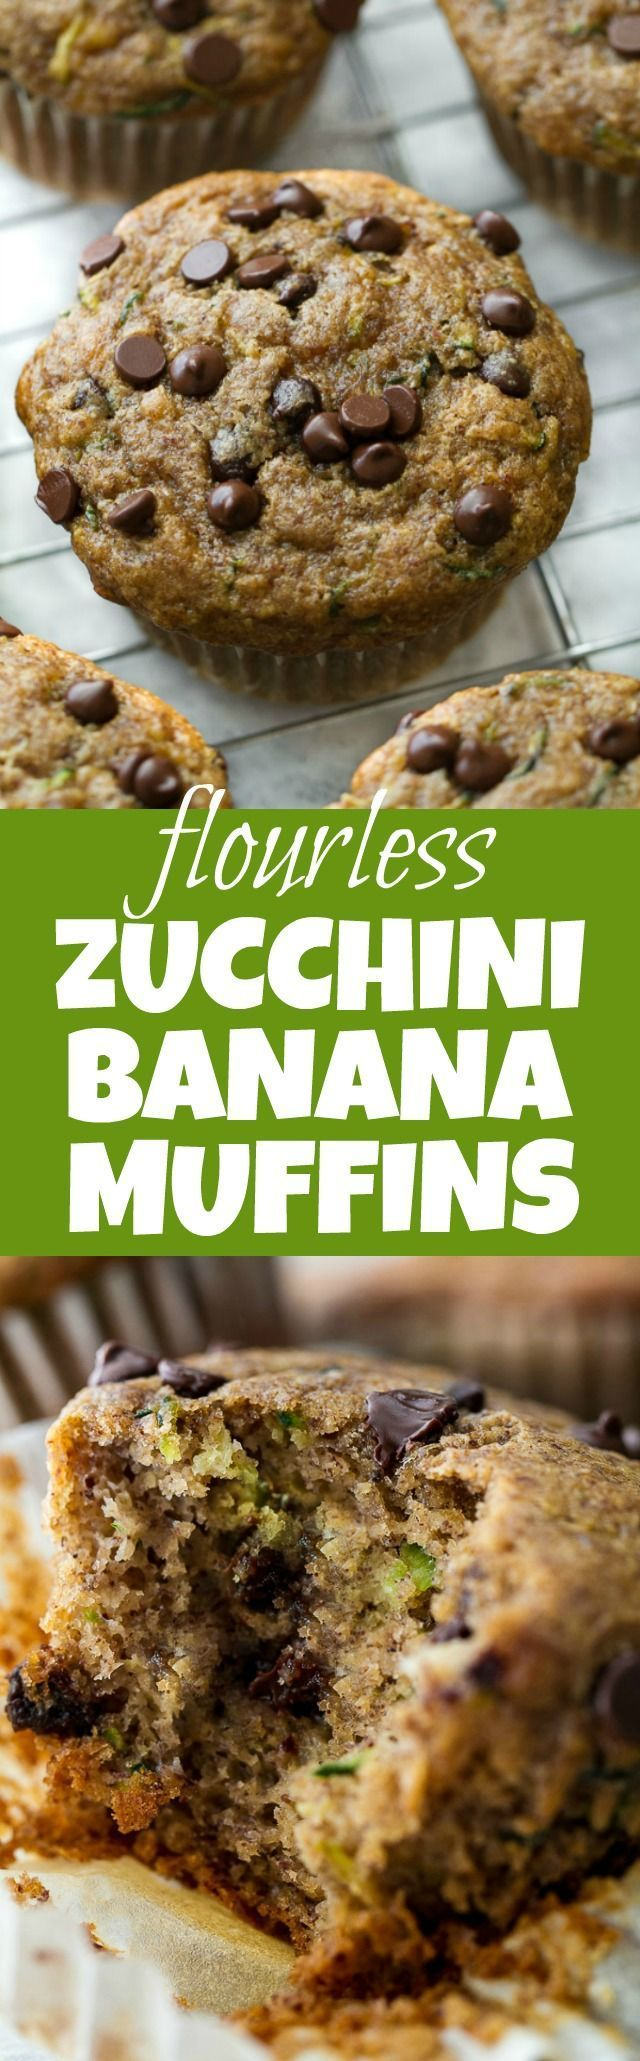 Flourless chocolate chip zucchini banana muffins that are so tender and flavourful, you'd never know they were made without flour, oil, or refined sugar. Gluten free and made with wholesome ingredients, they make a healthy and delicious breakfast or snack | runningwithspoons.com